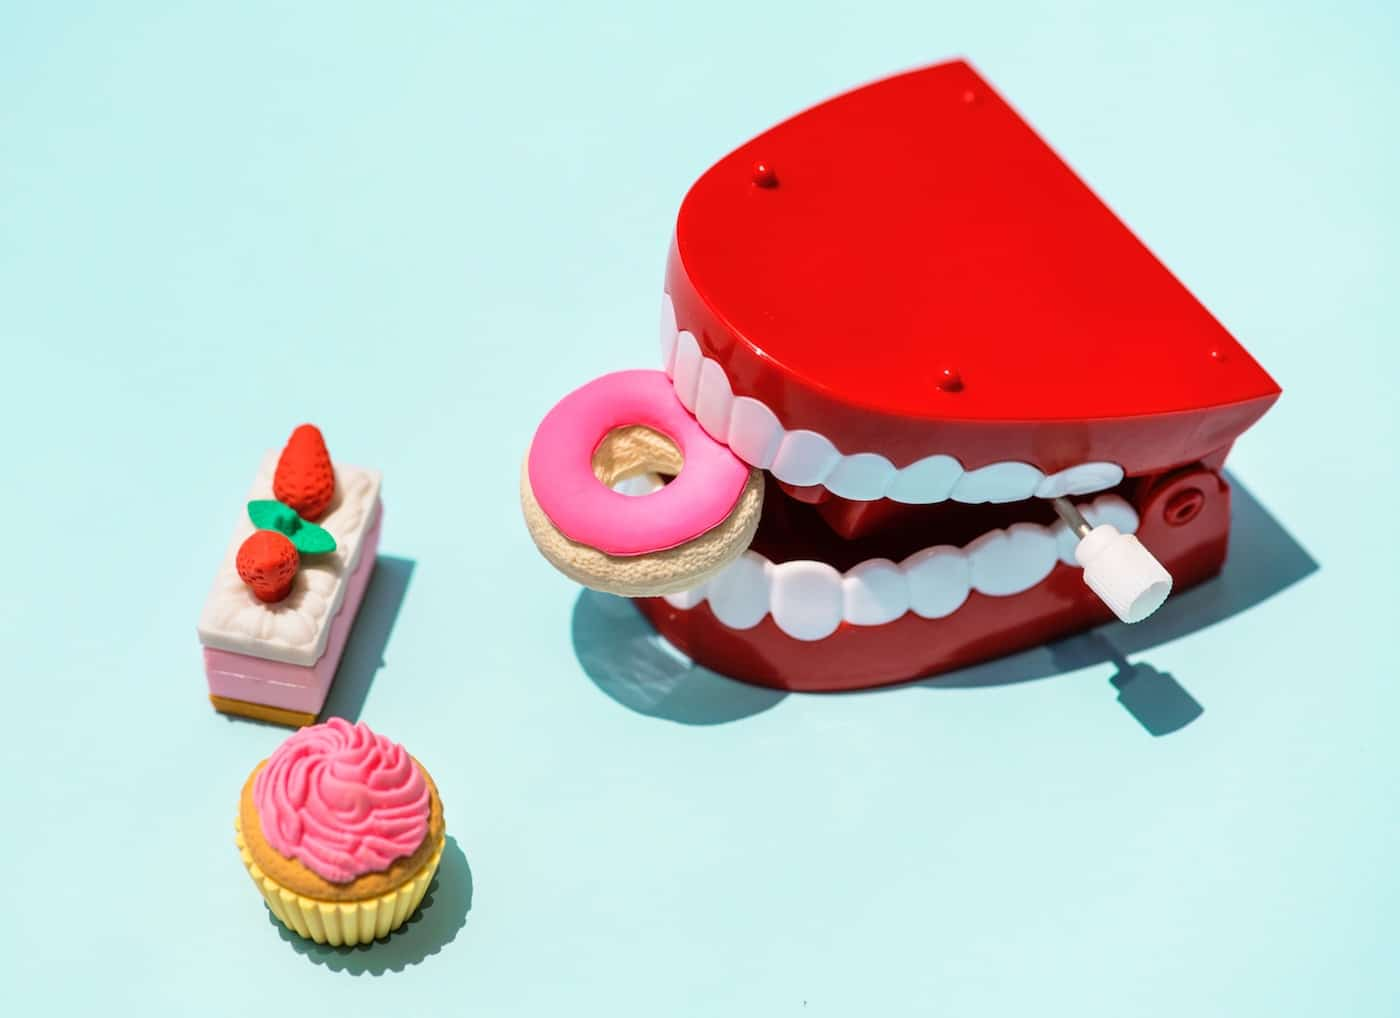 Top 5 Junk Foods to Avoid for Dental Health | Smile Workshop Cedar Hill